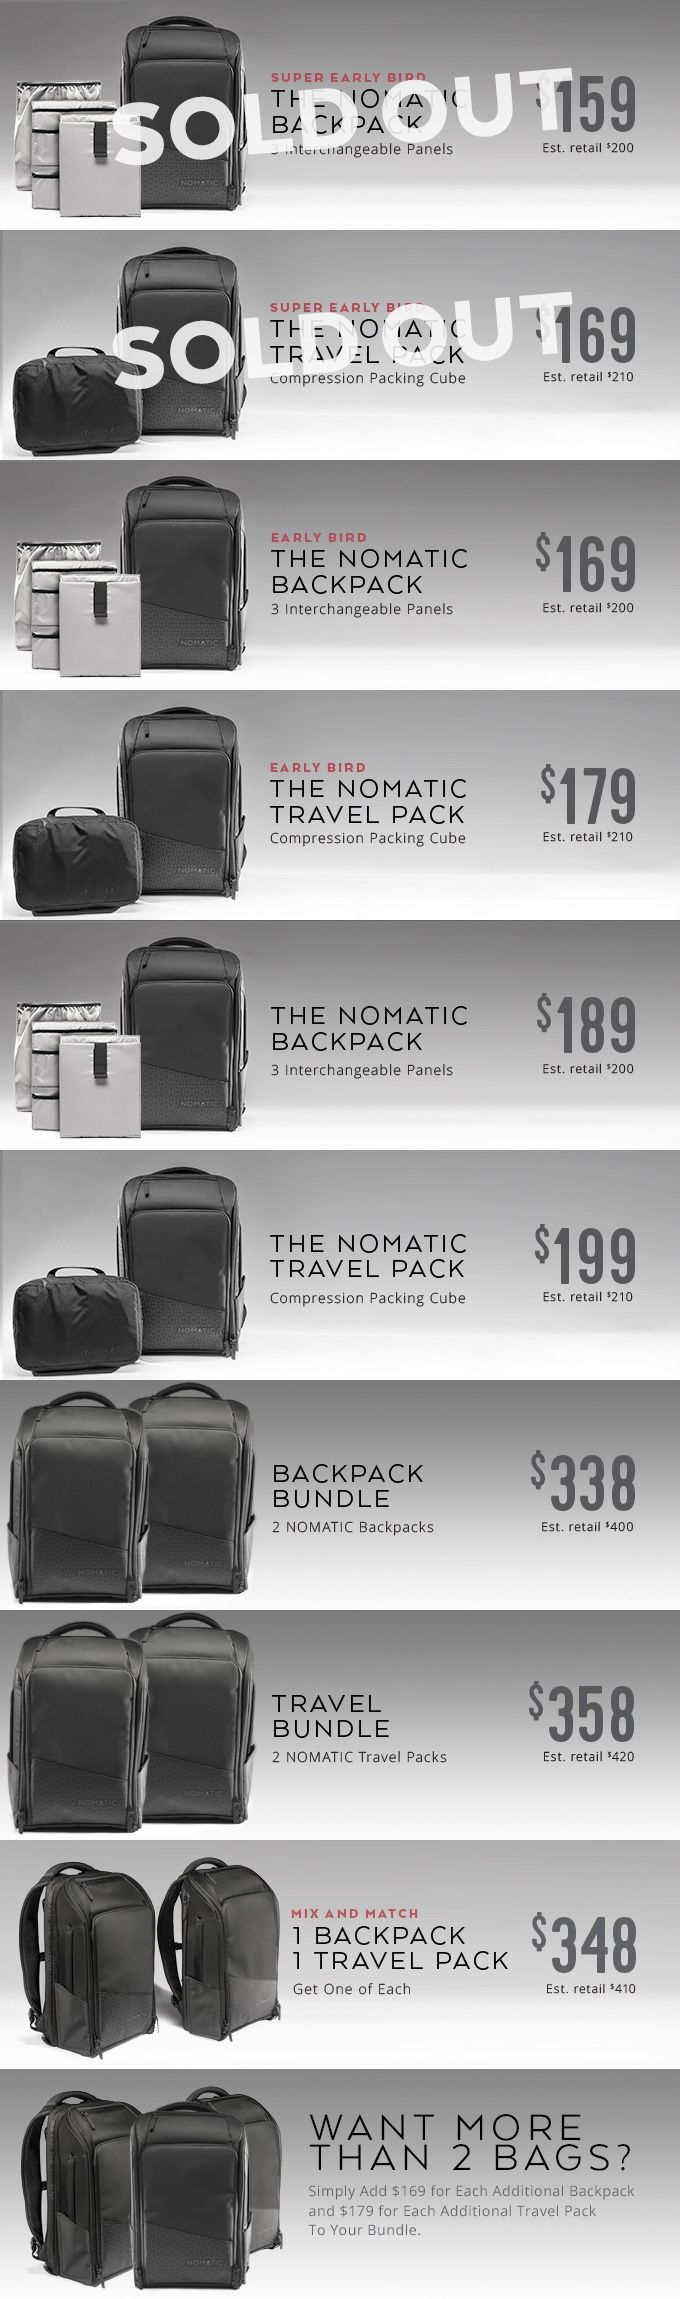 De NOMATIC Rugzak en Travel Pack door Jon Richards & Jacob Durham - Kickstarter